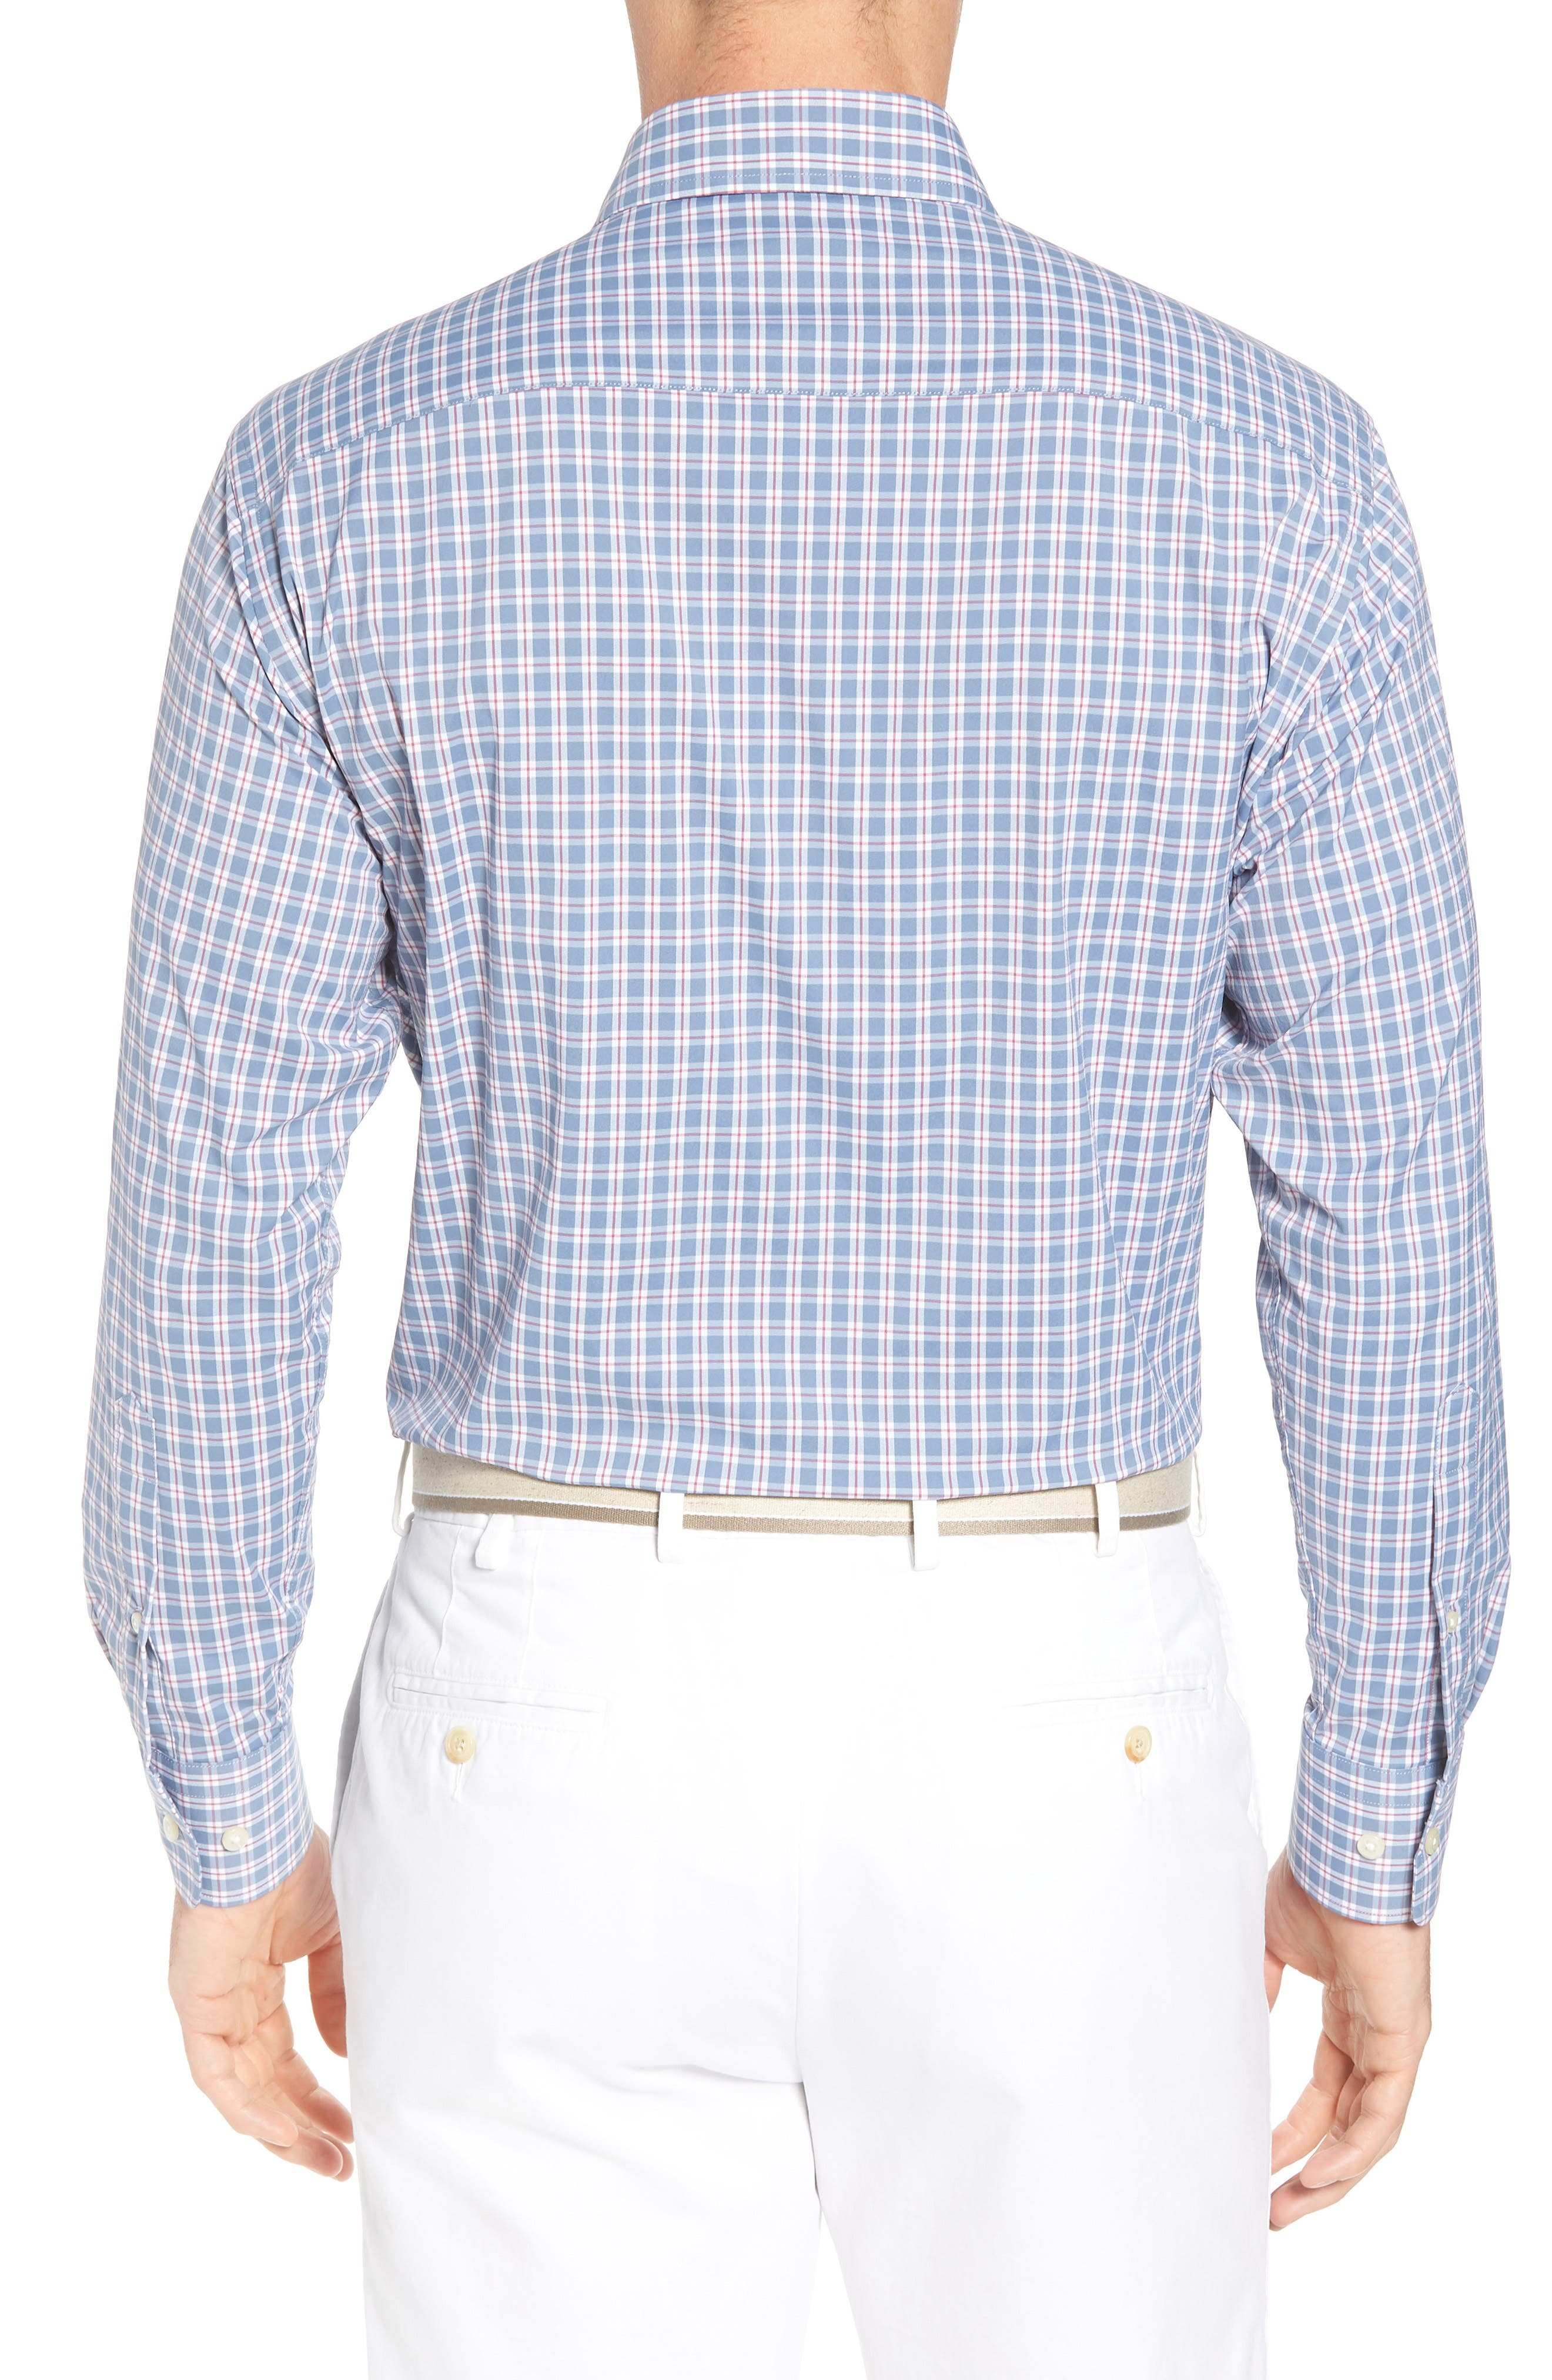 Ballard Regular Fit Check Performance Sport Shirt,                             Alternate thumbnail 2, color,                             400